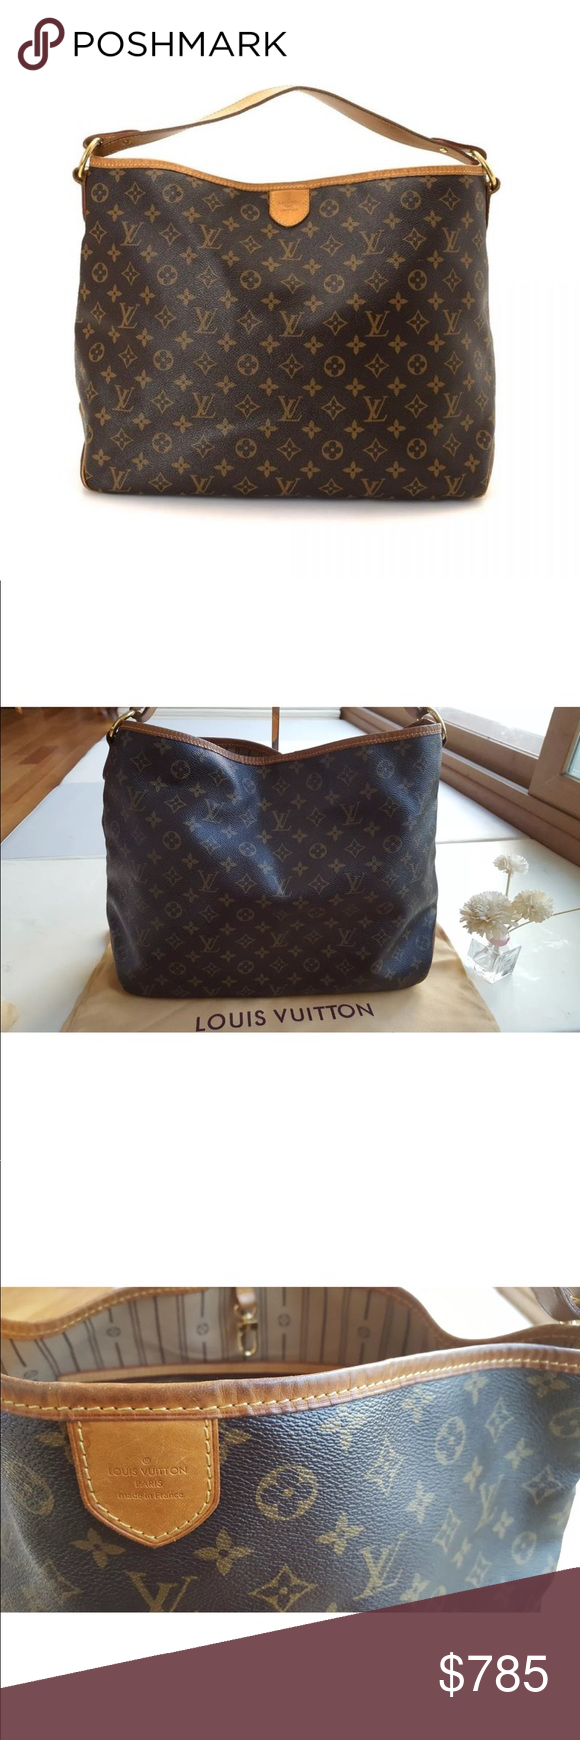 2cb17d572ce5 Authentic Louis Vuitton Delightful MM MONOGRAM This stylish shoulder bag is  finely crafted of classic Louis